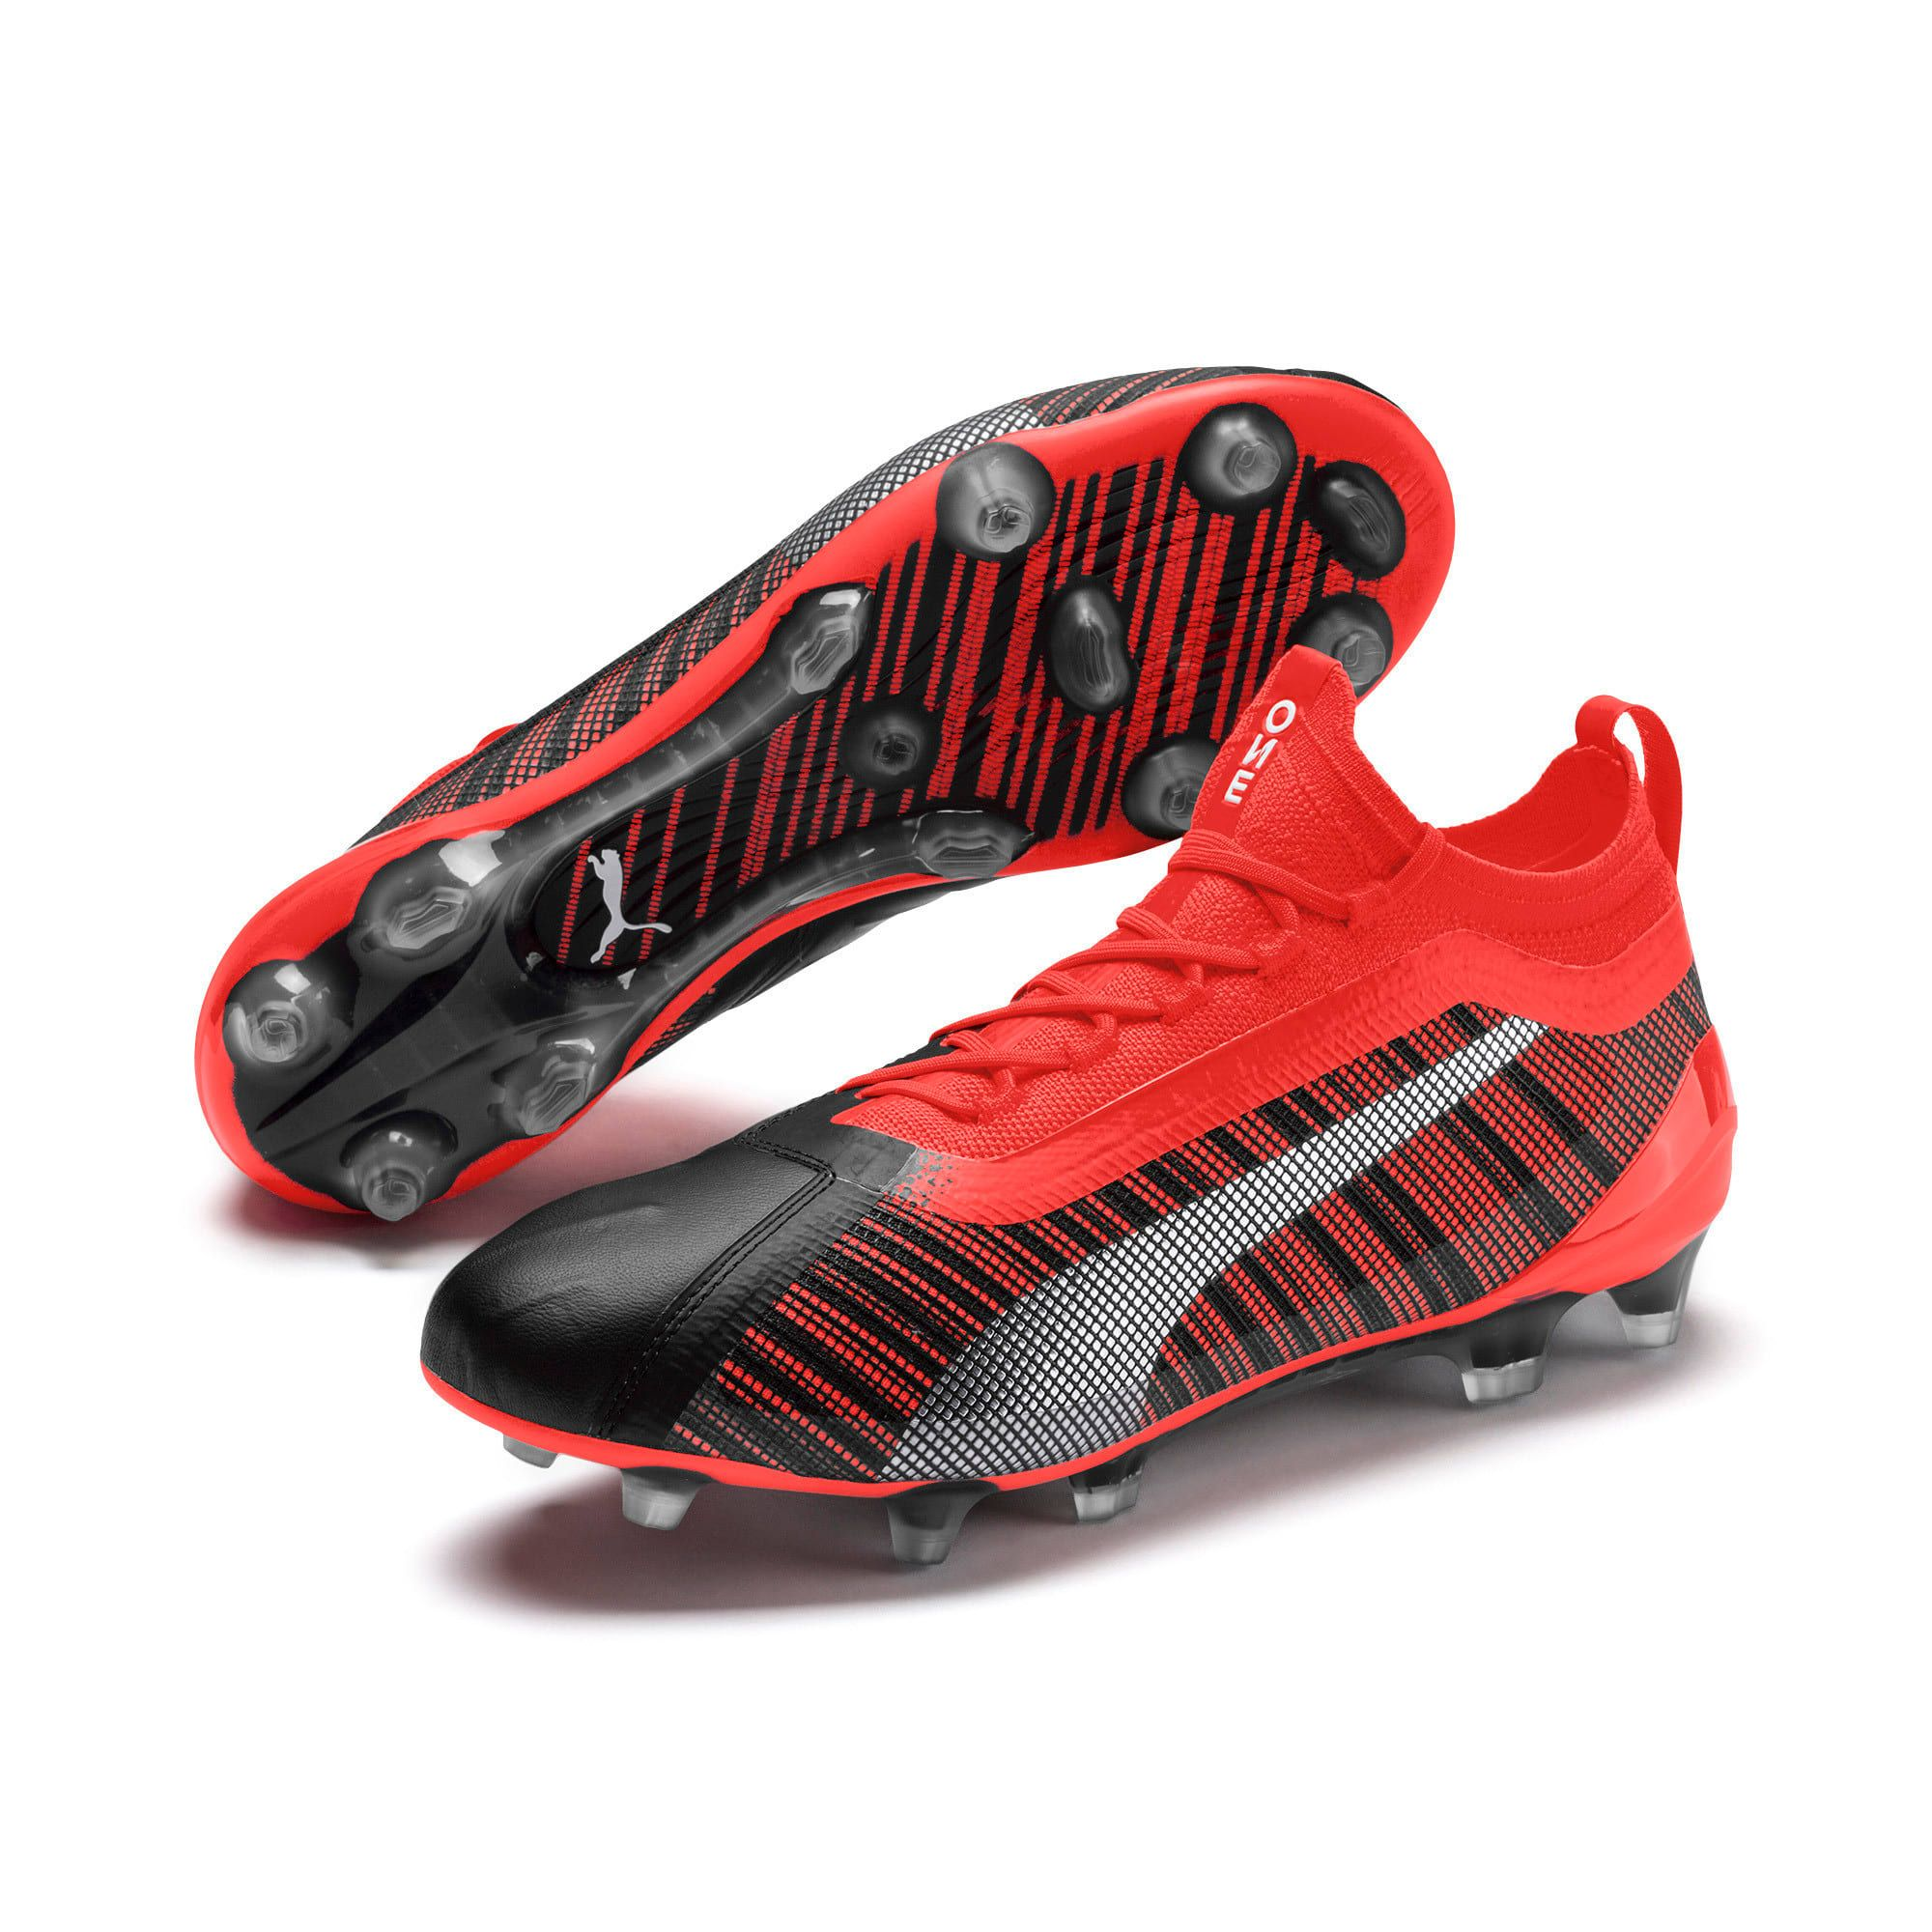 PUMA One 5.1 EvoKnit FG/AG Men's Football Boots in Black/Red ...